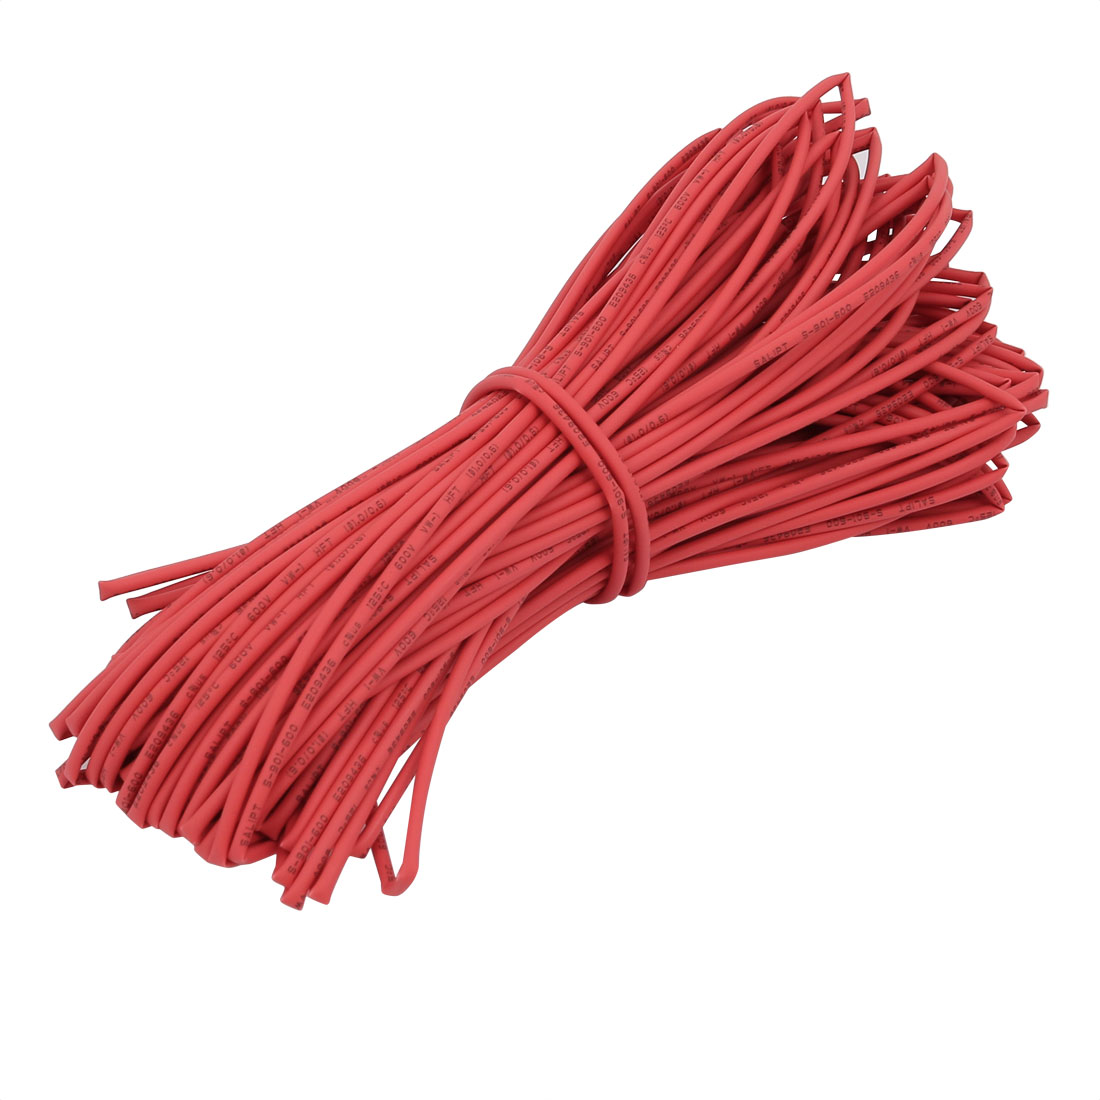 20M 0.04in Inner Dia Polyolefin Flame Retardant Tube Red for Wire Repairing